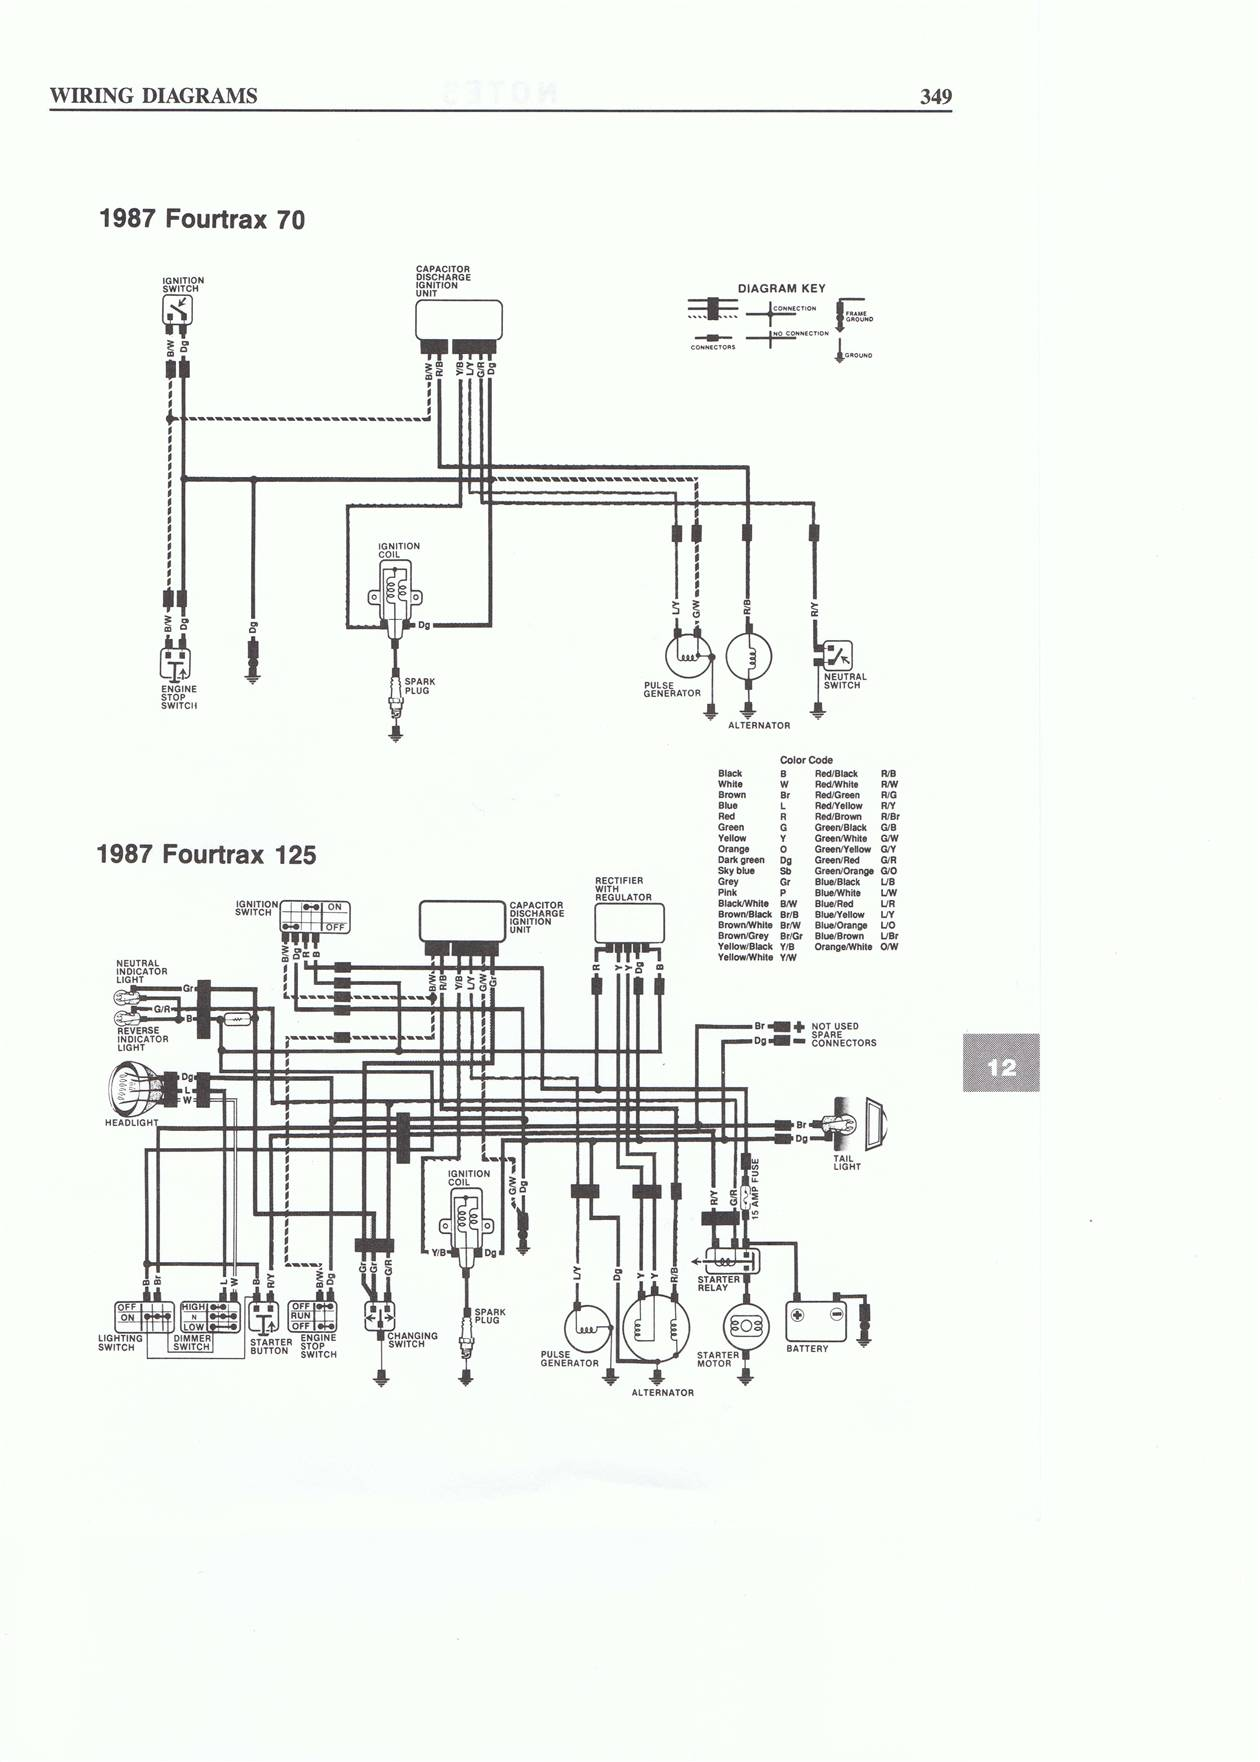 wiring diagram for gy6 150cc engine  u2013 readingrat net